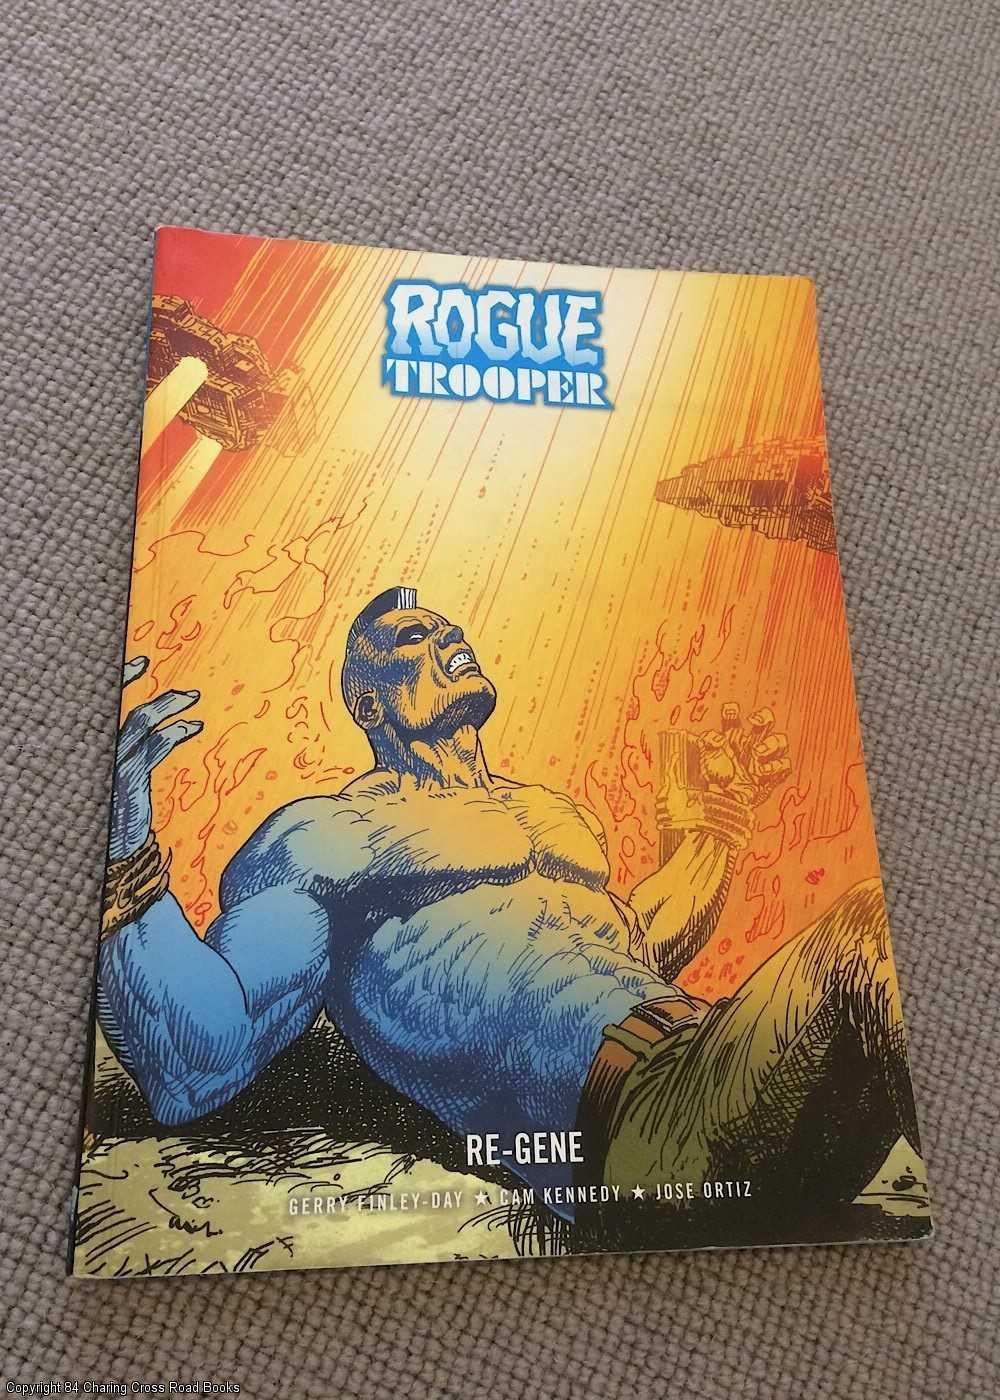 FINLEY-DAY, GERRY - Rogue Trooper: Regene